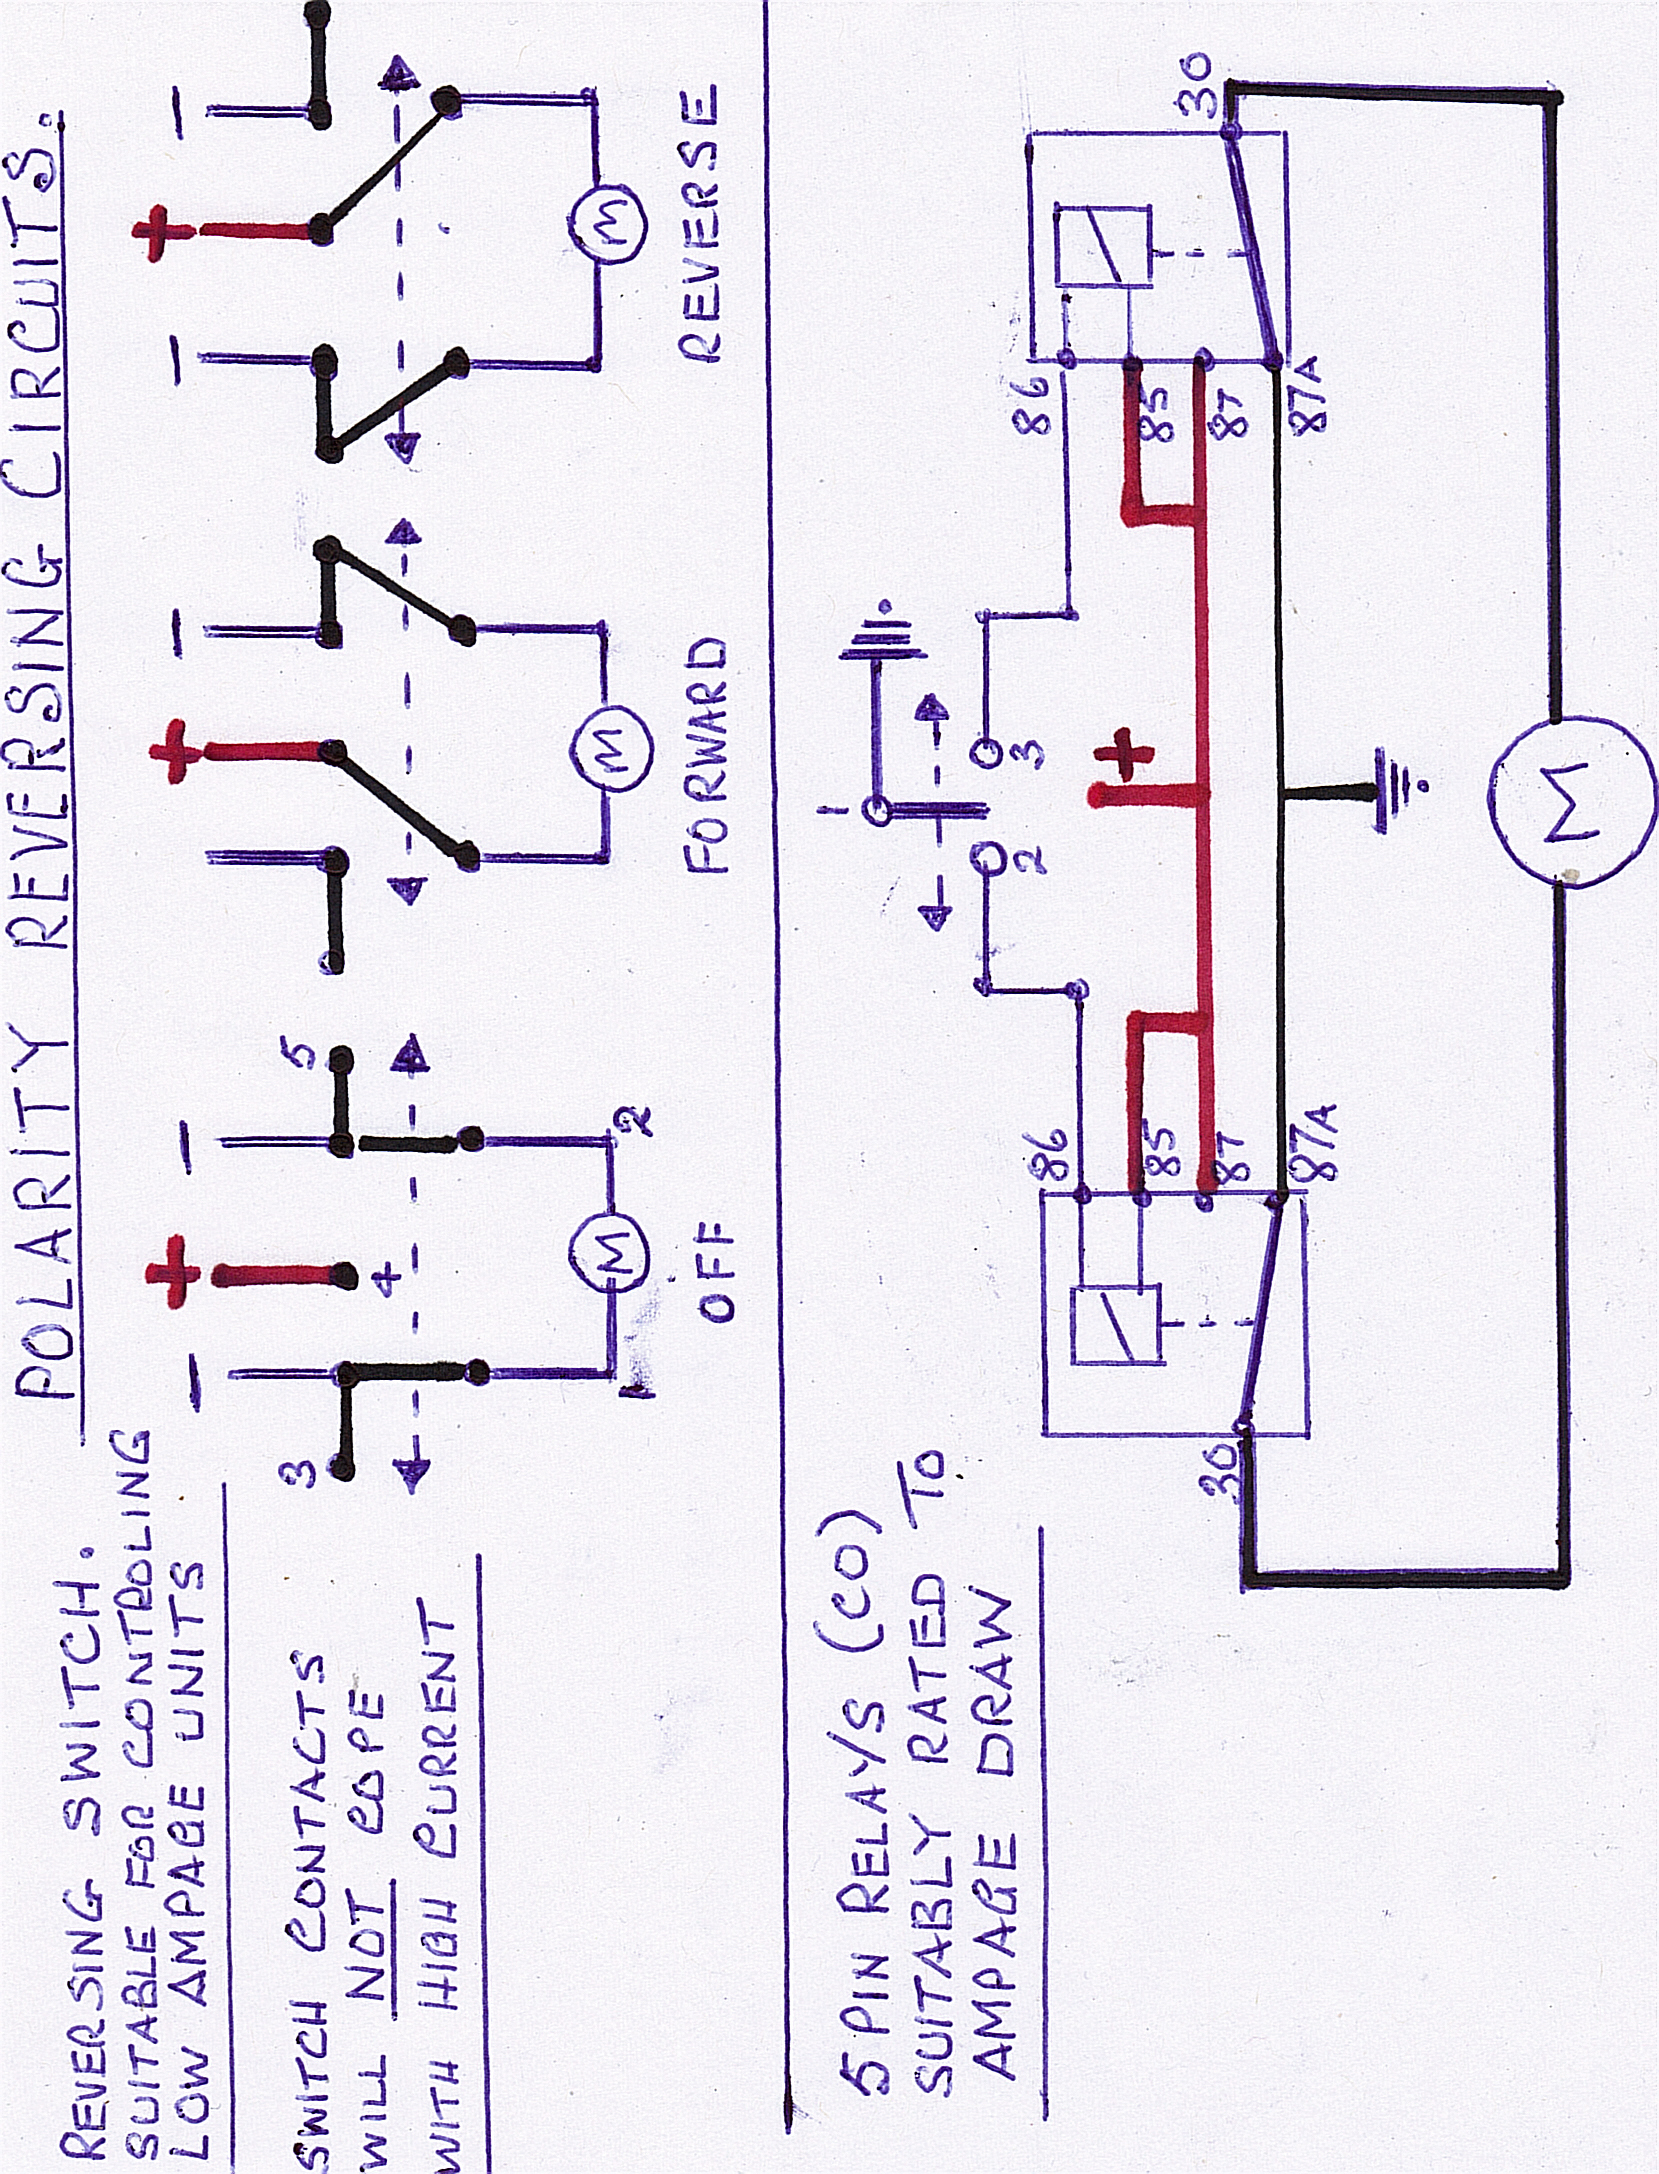 12 volt wiring diagram for reversing switches shore power wiring diagram elsavadorla